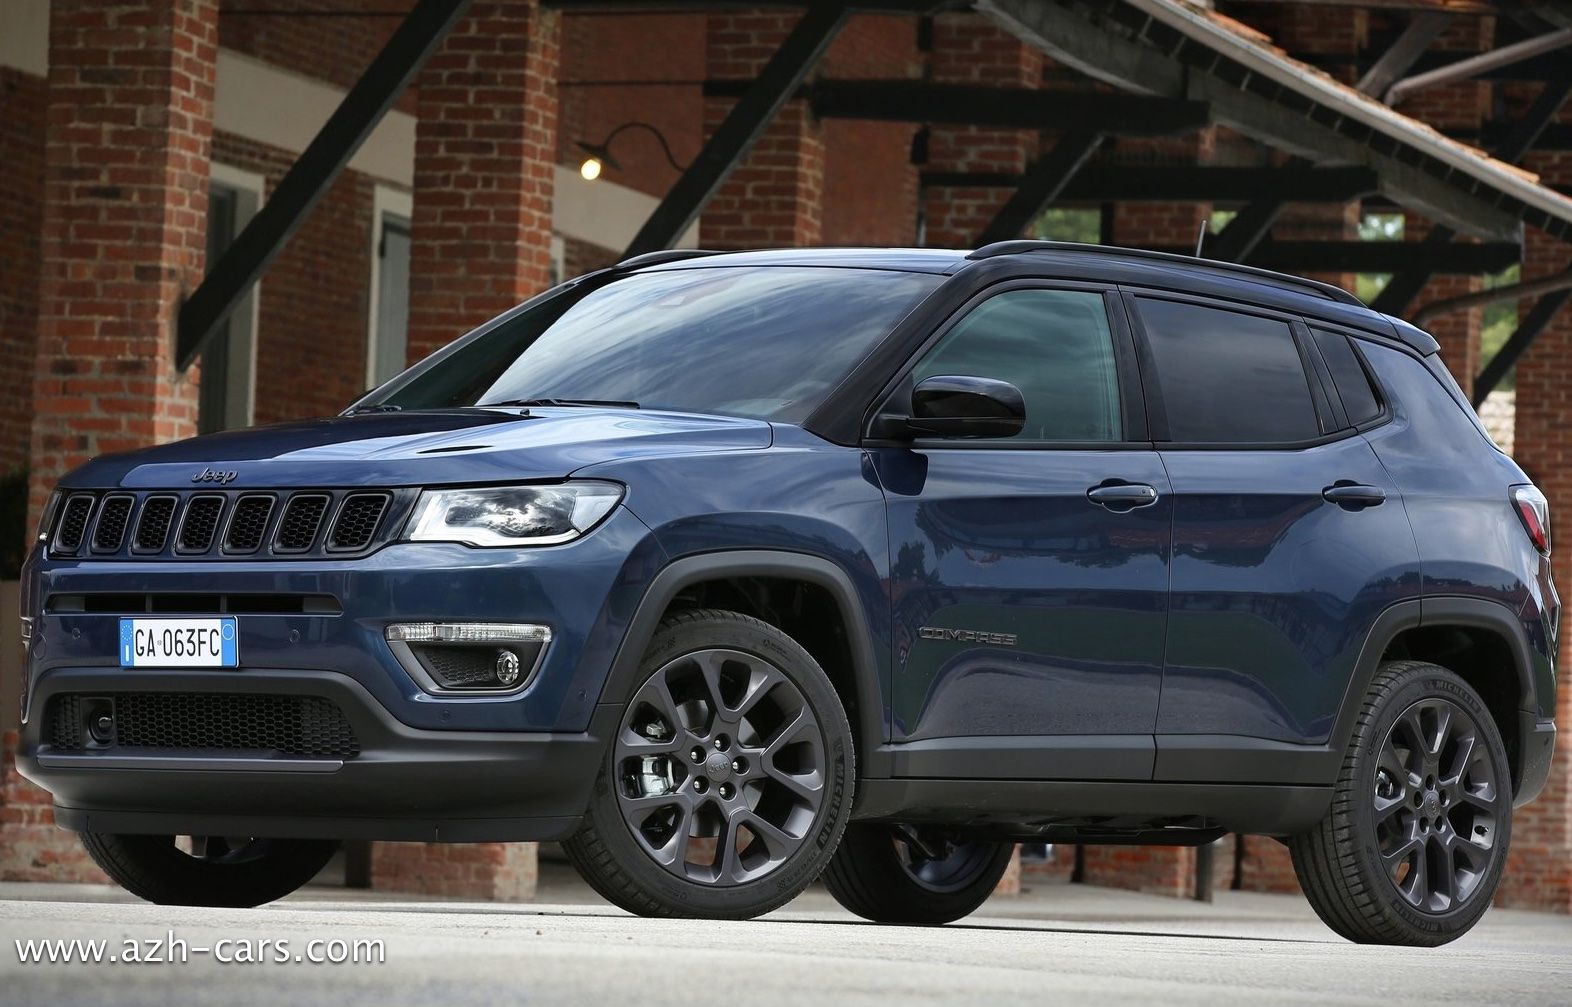 Jeep Compass 2020 In 2020 Jeep Compass Jeep Bike News